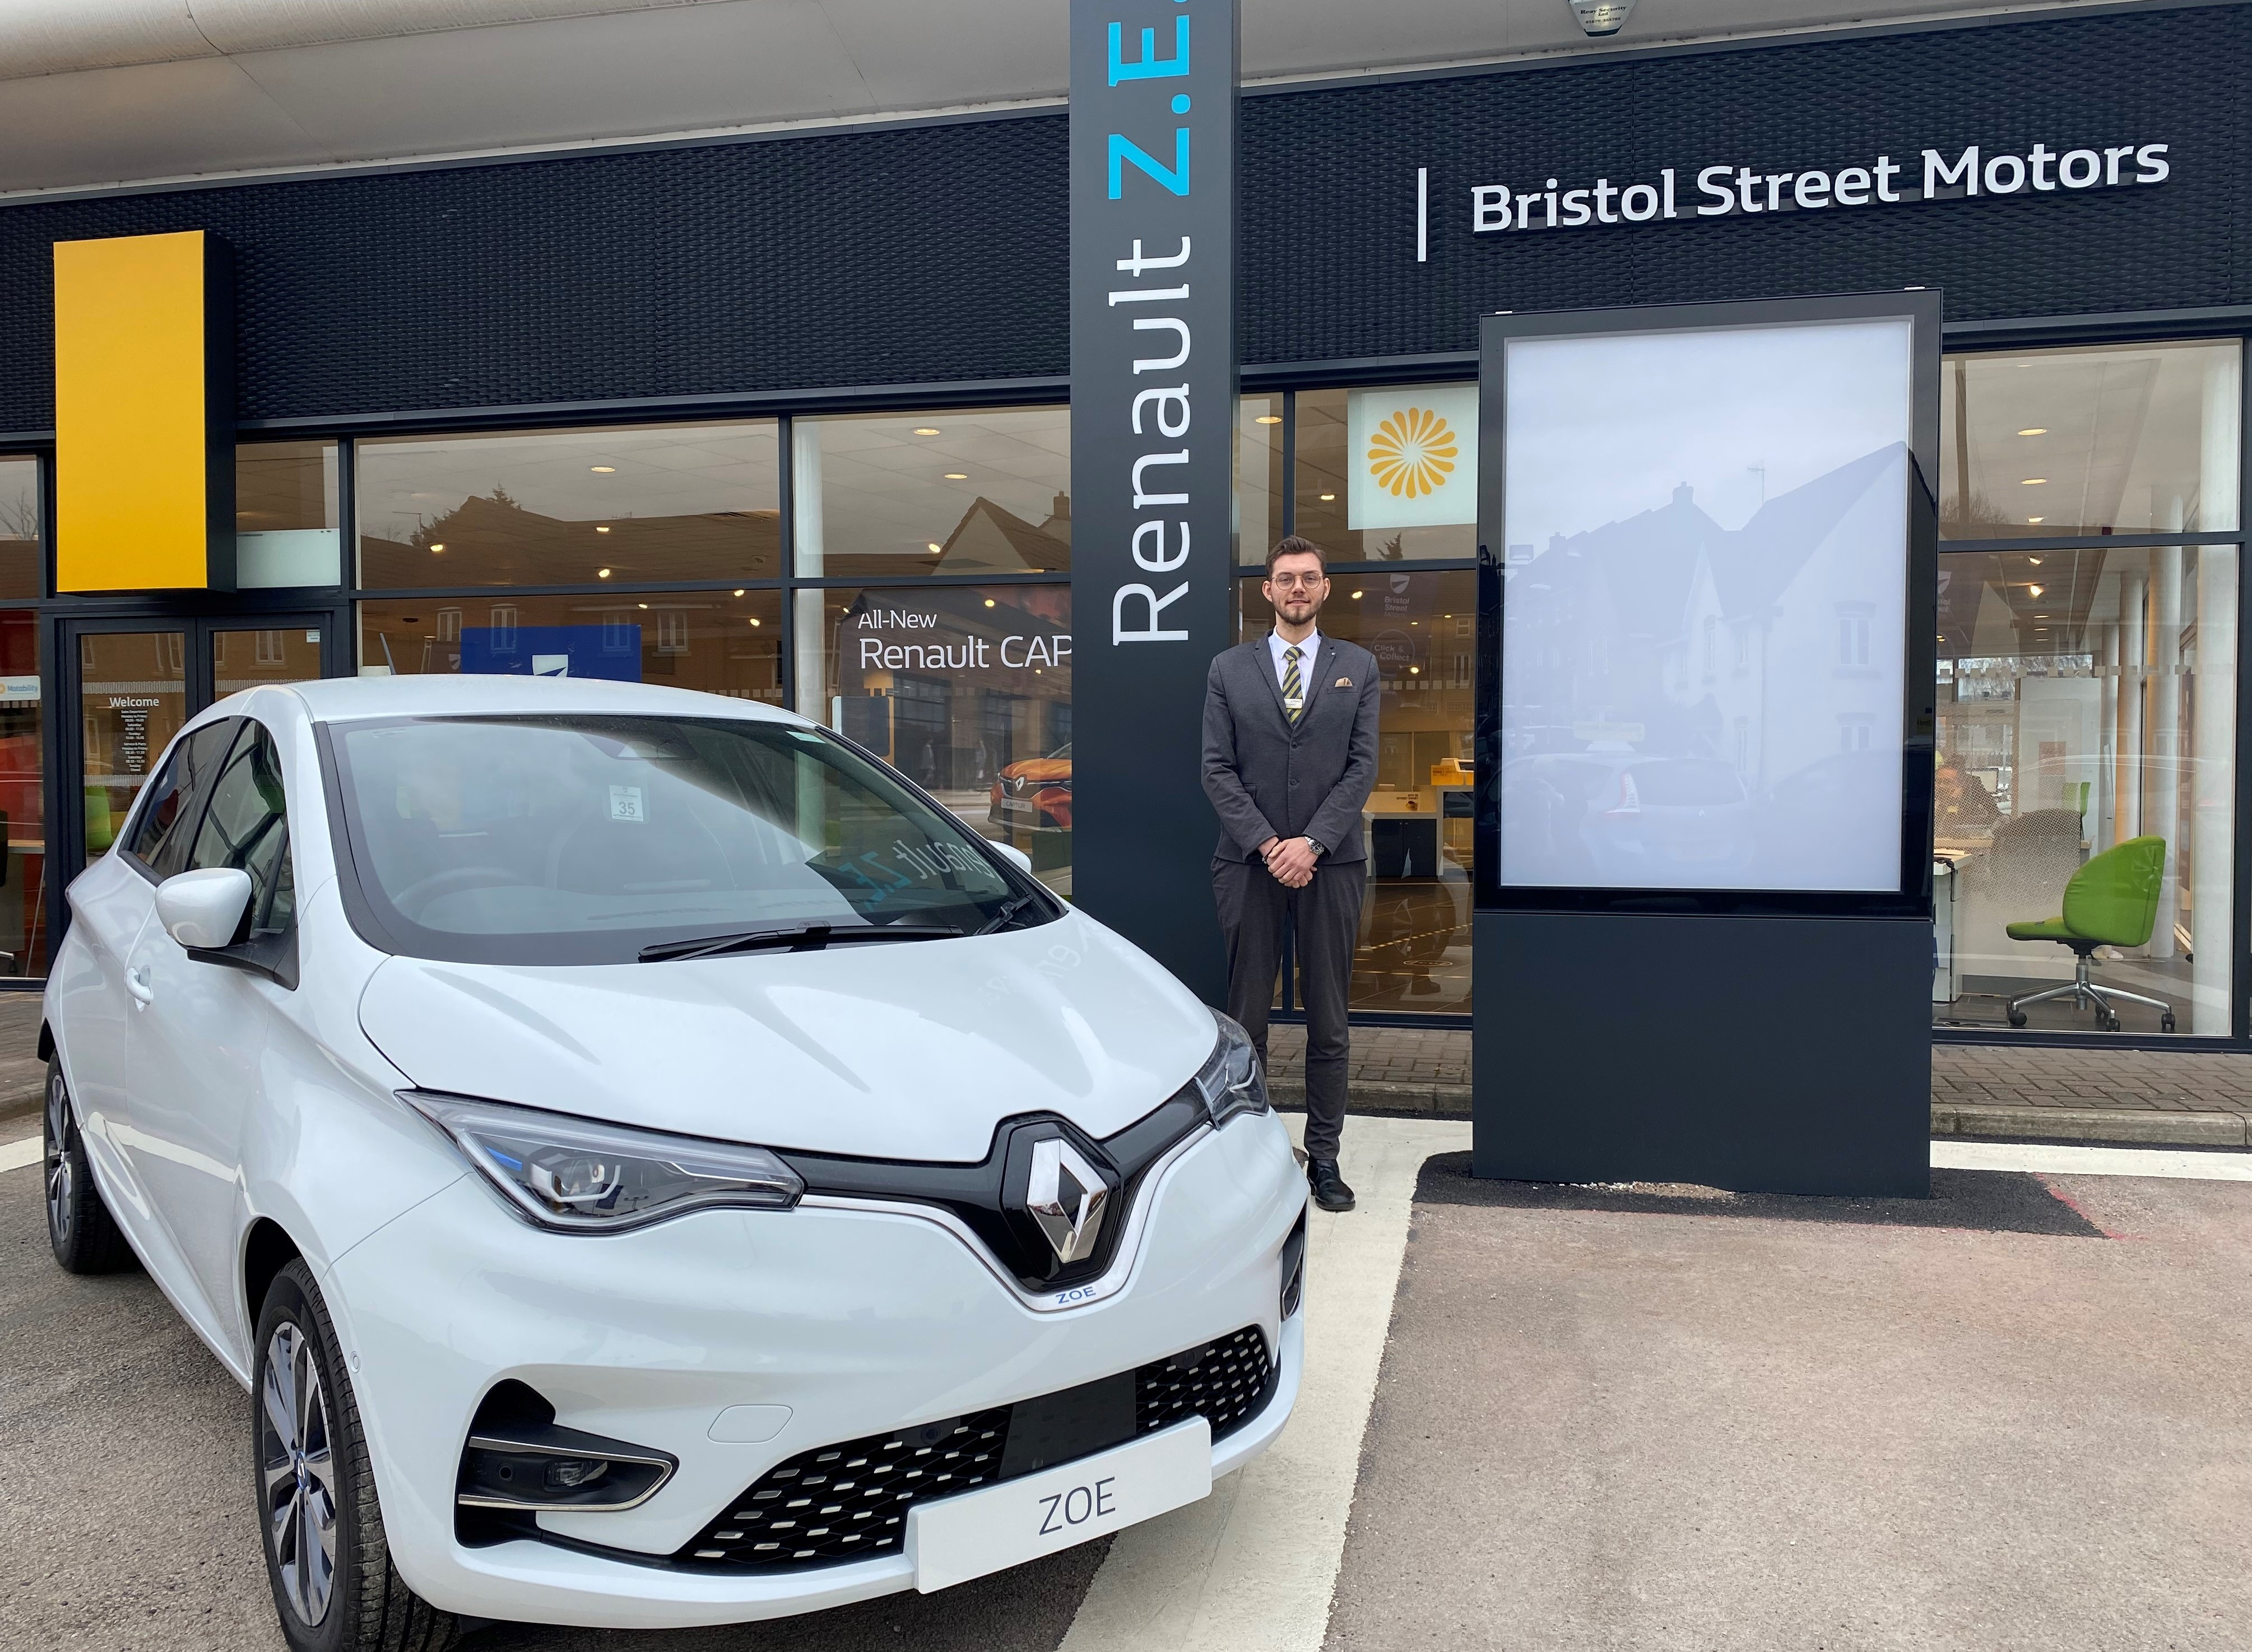 Bristol Street Motors Renault & Dacia Nottingham has demonstrated its knowledge and expertise in the electric vehicle market to gain Electric Vehicle Approved Status (EVA).